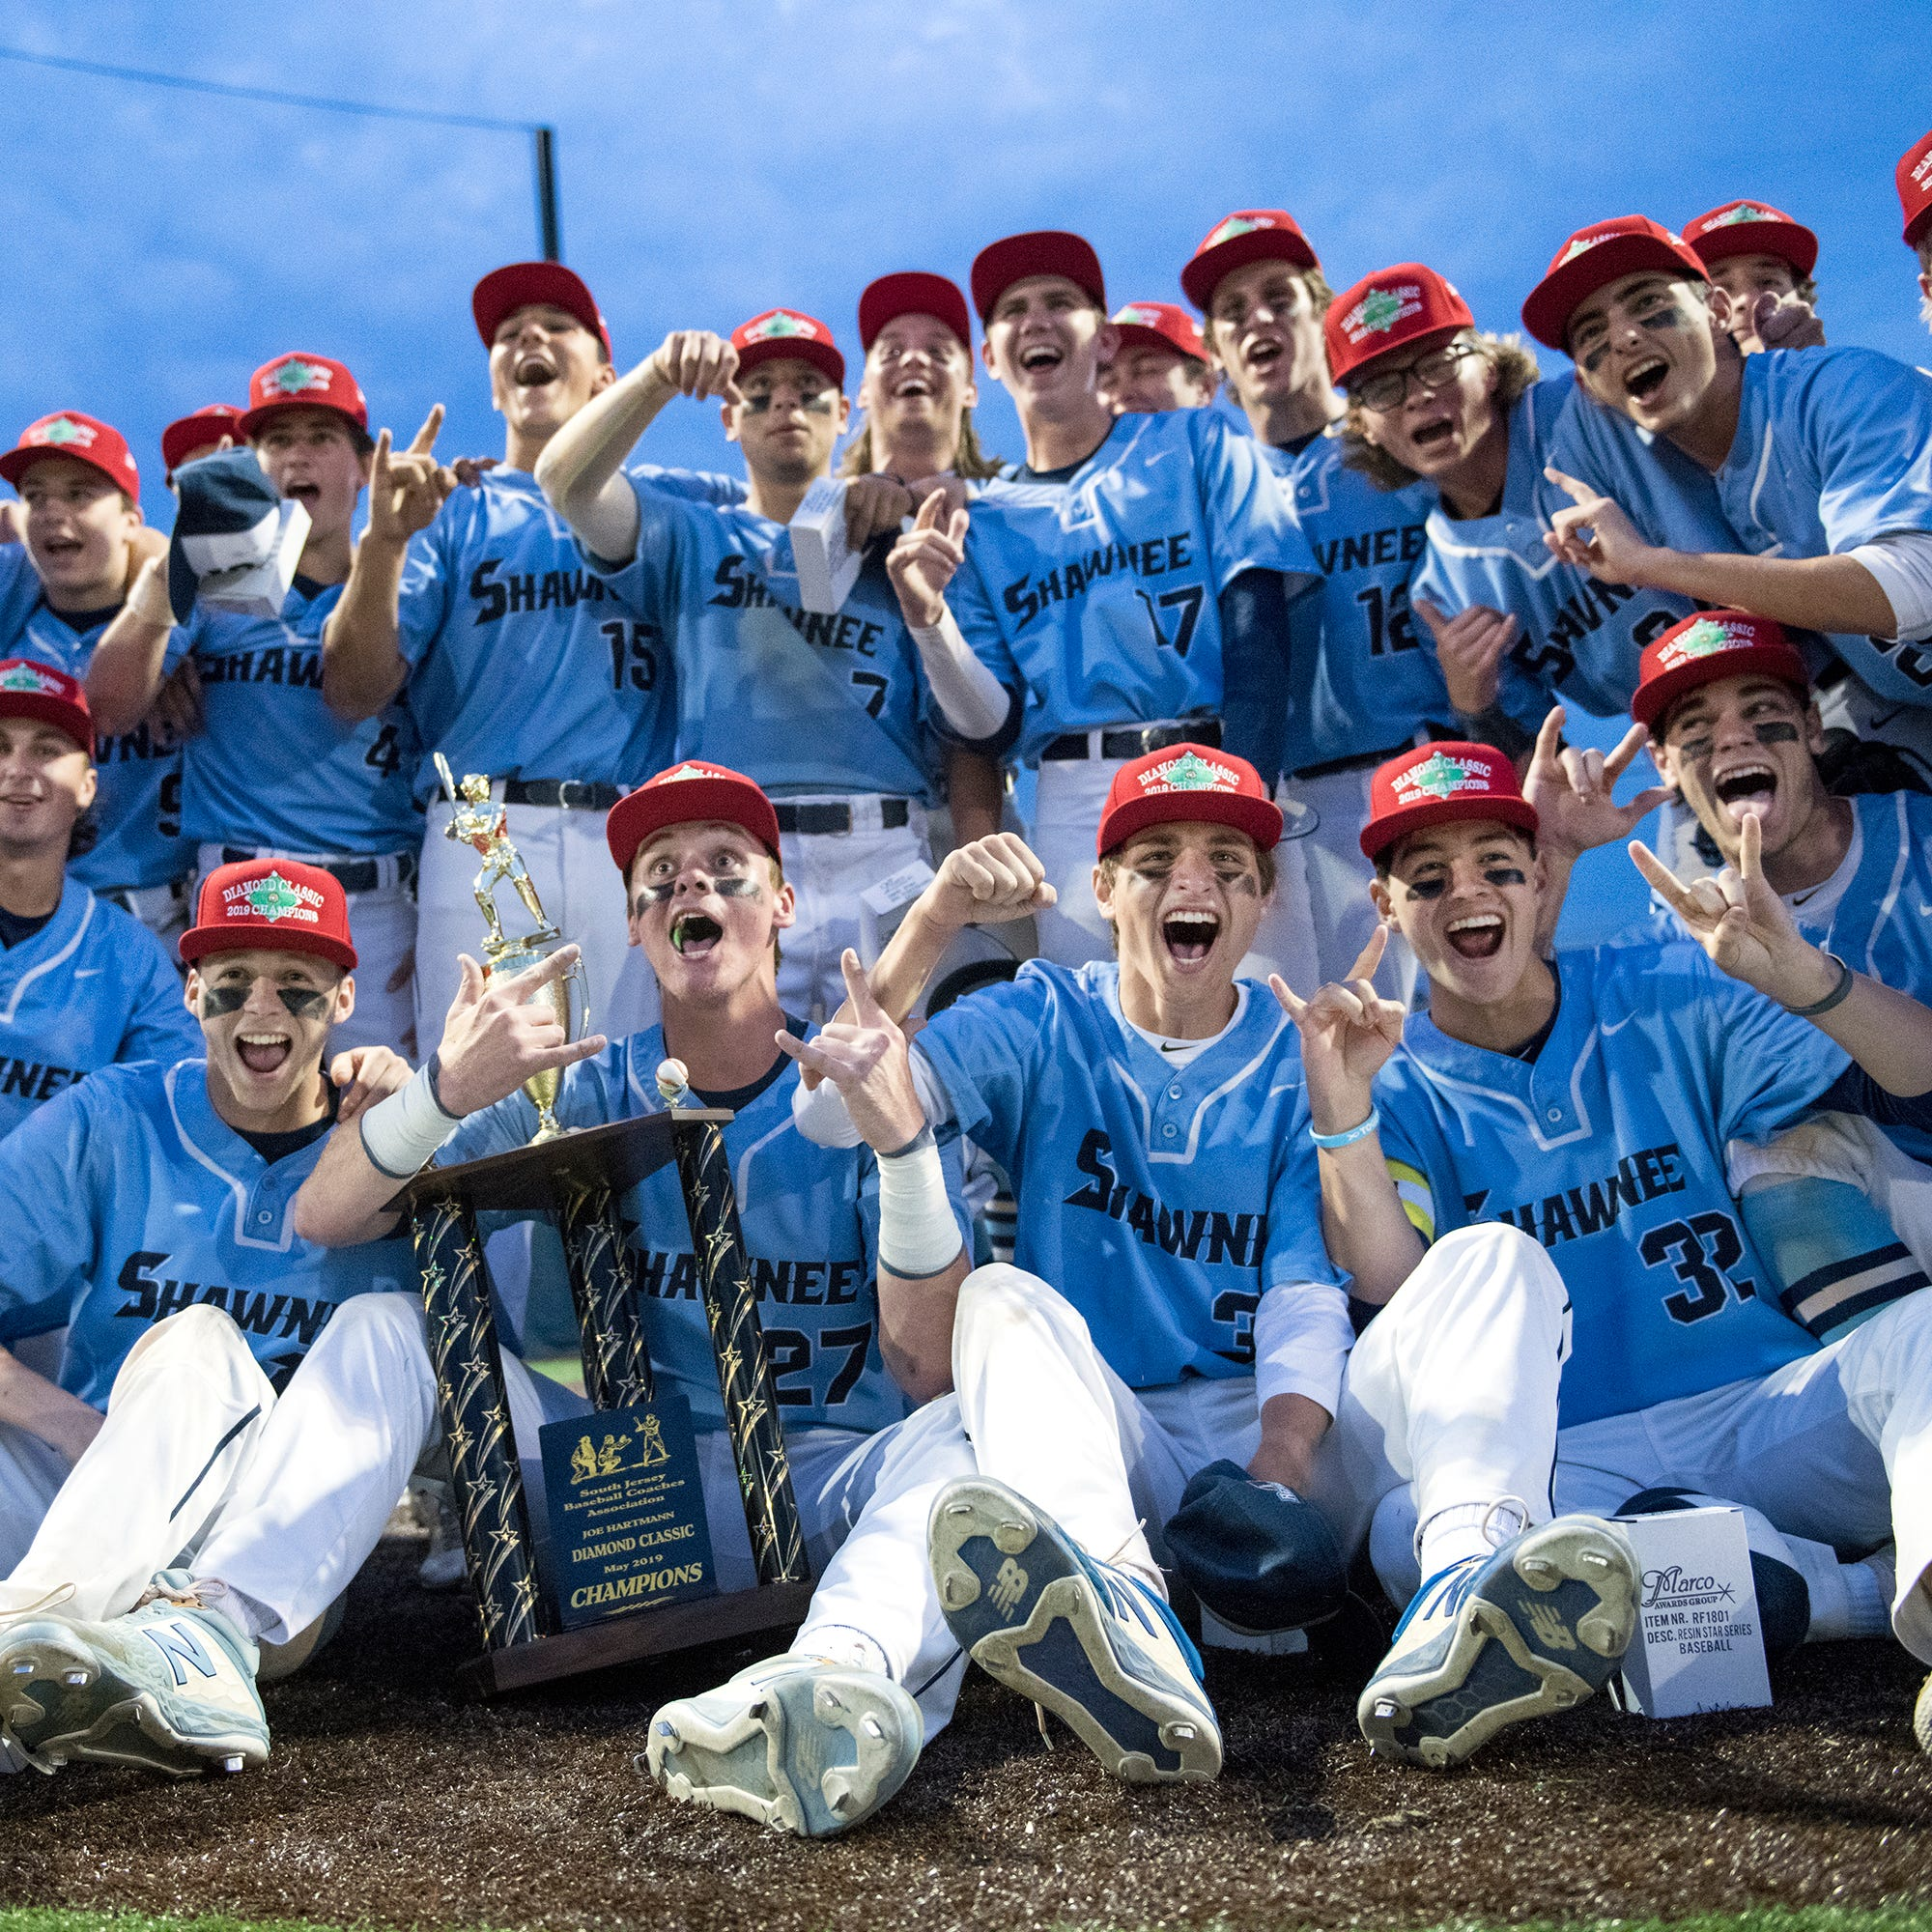 Diamond Classic: Shawnee captures first championship since 1990